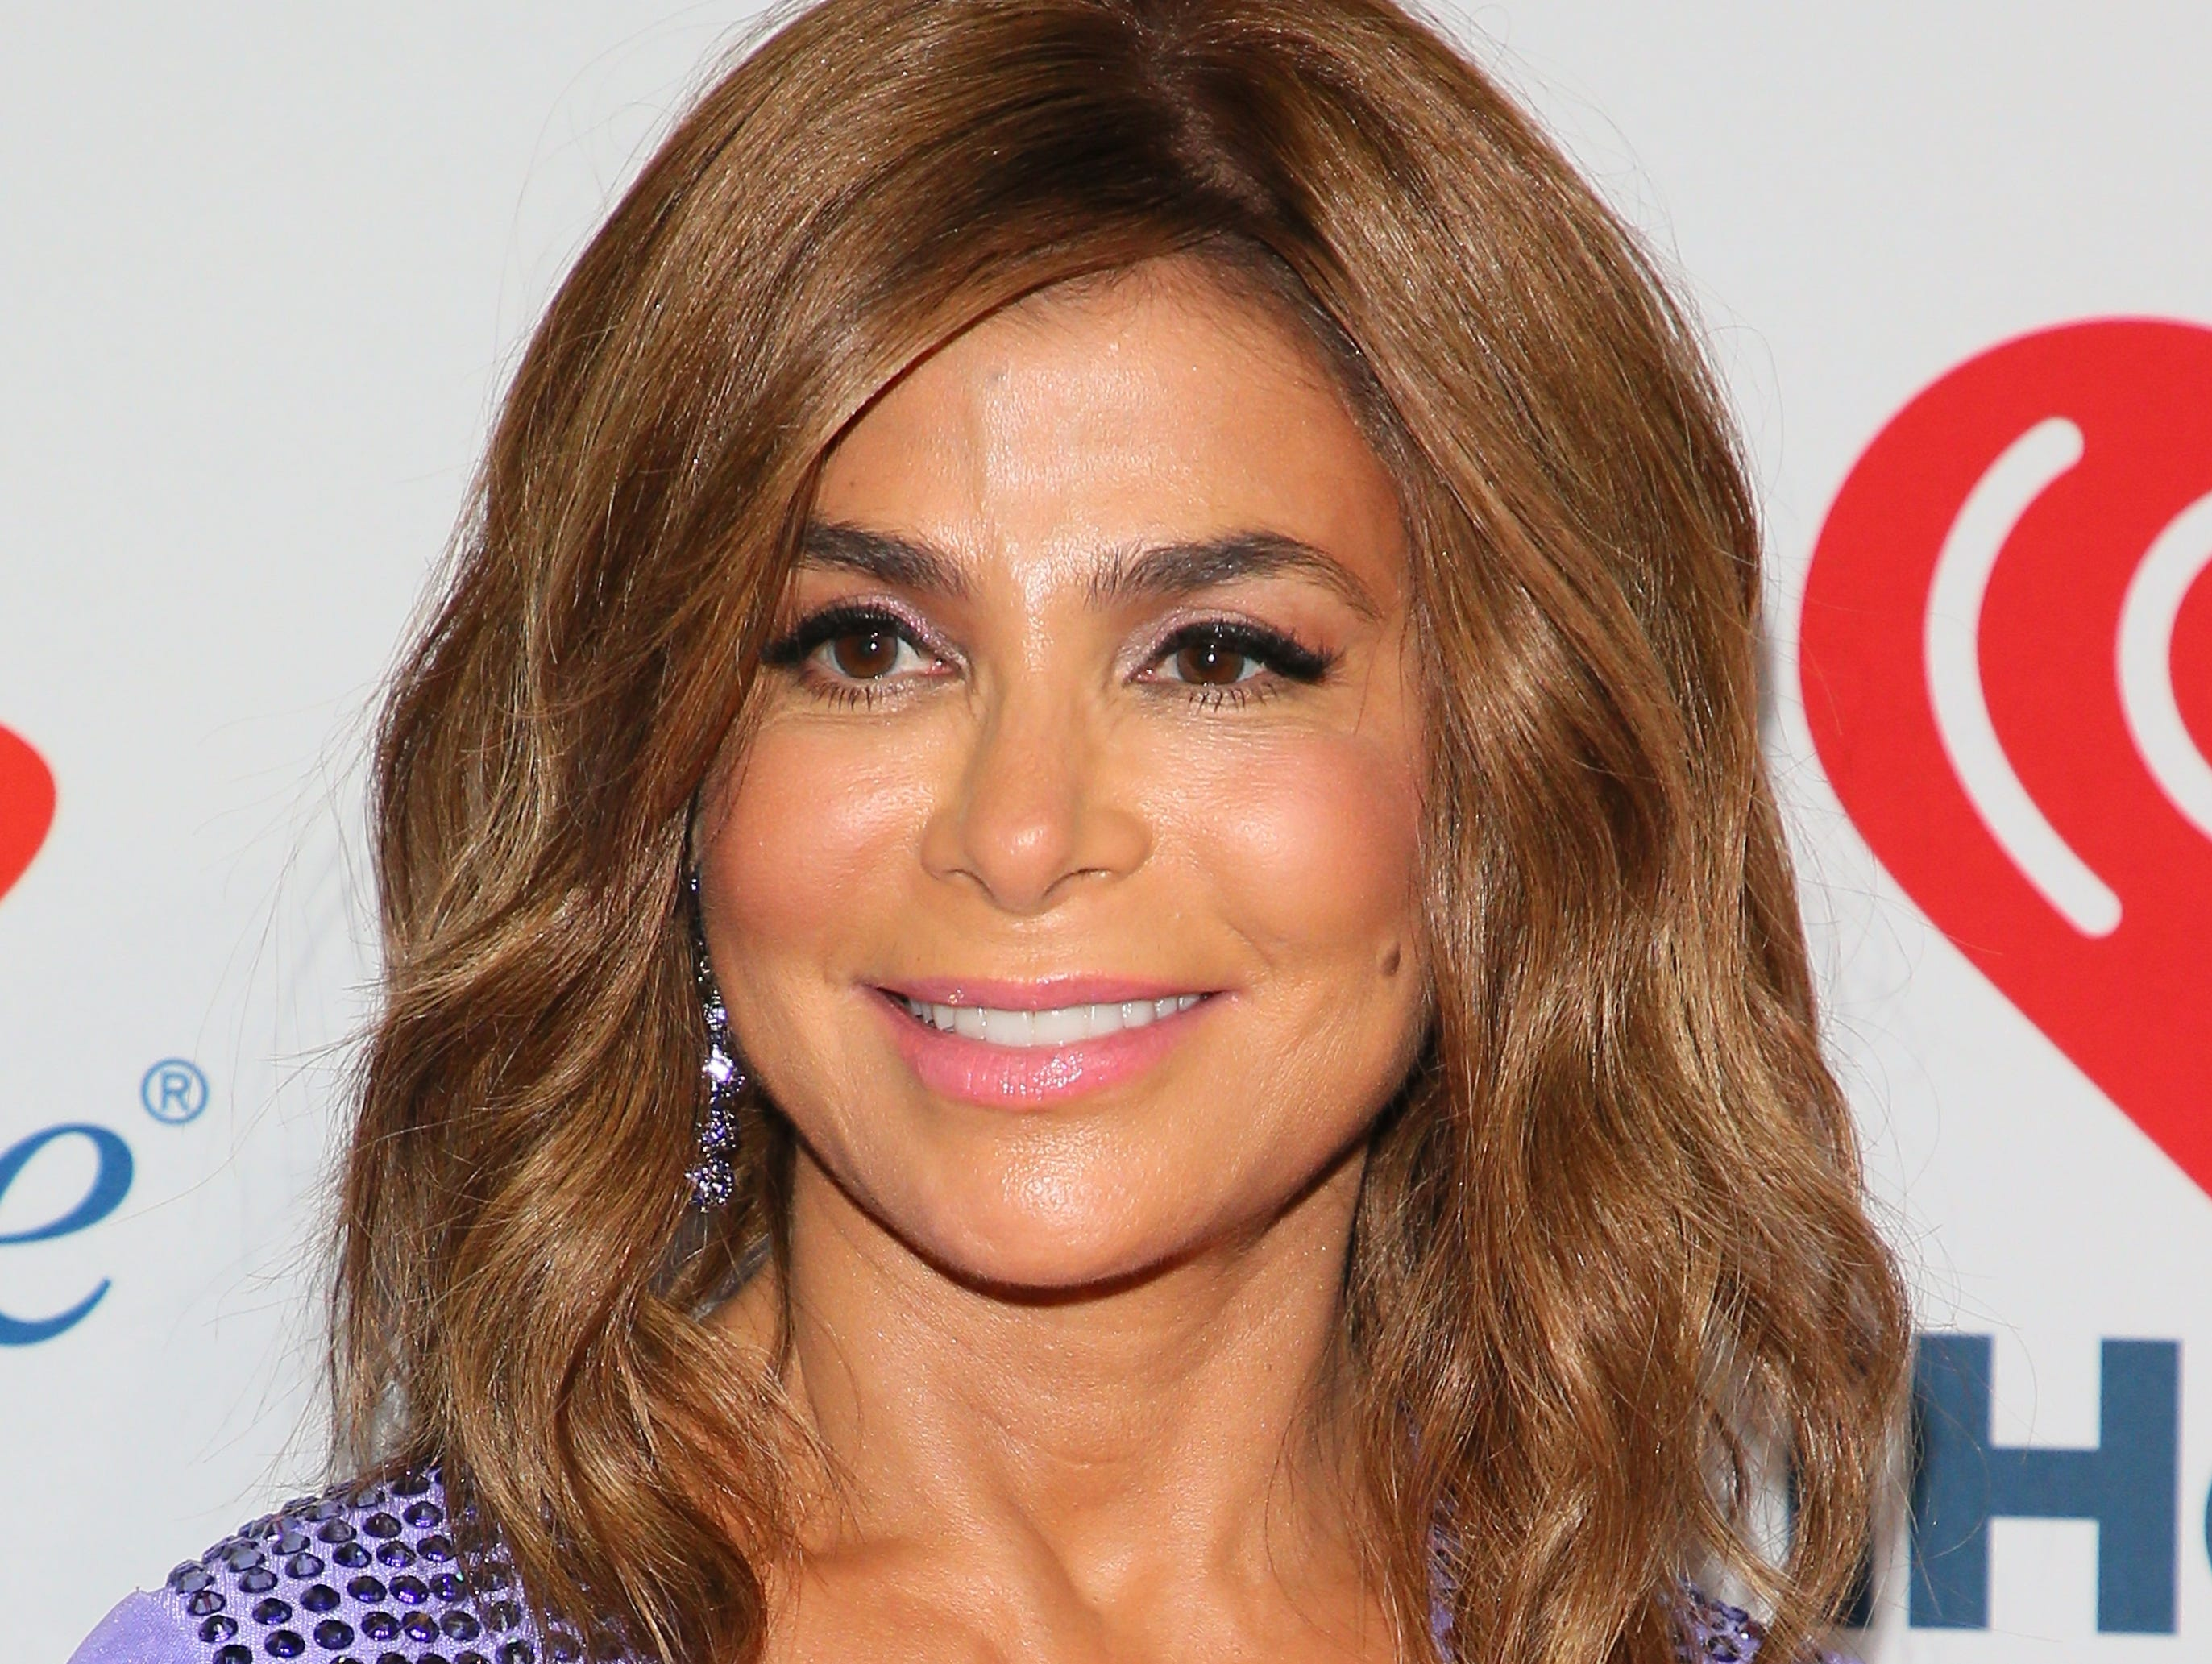 Paula Abdul falls off stage into the crowd at Mississippi concert